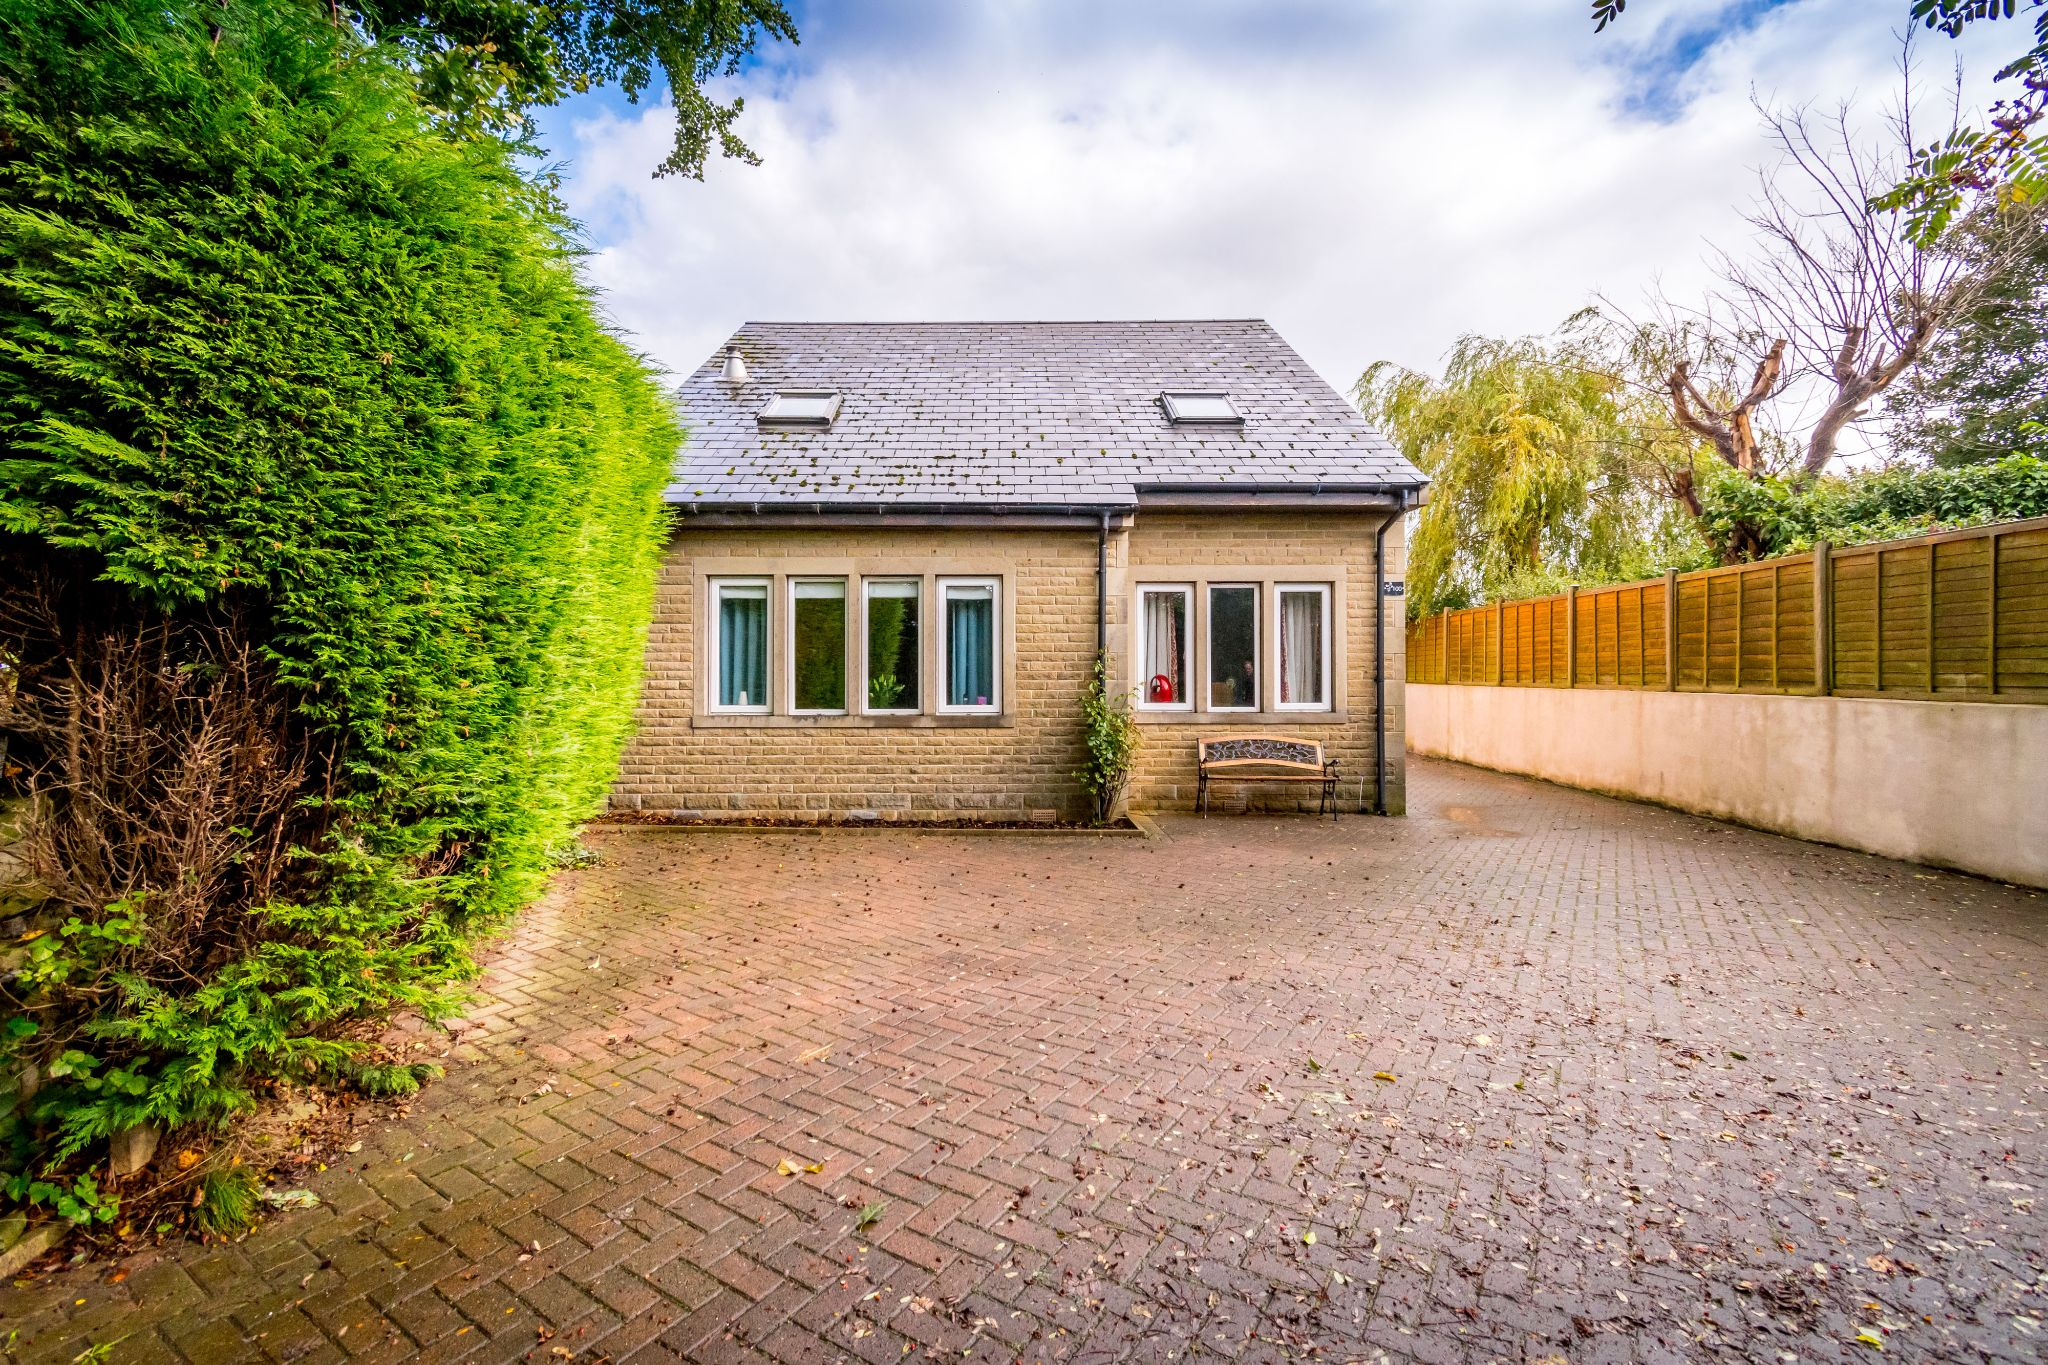 5 bedroom detached house For Sale in Brighouse - Ample parking